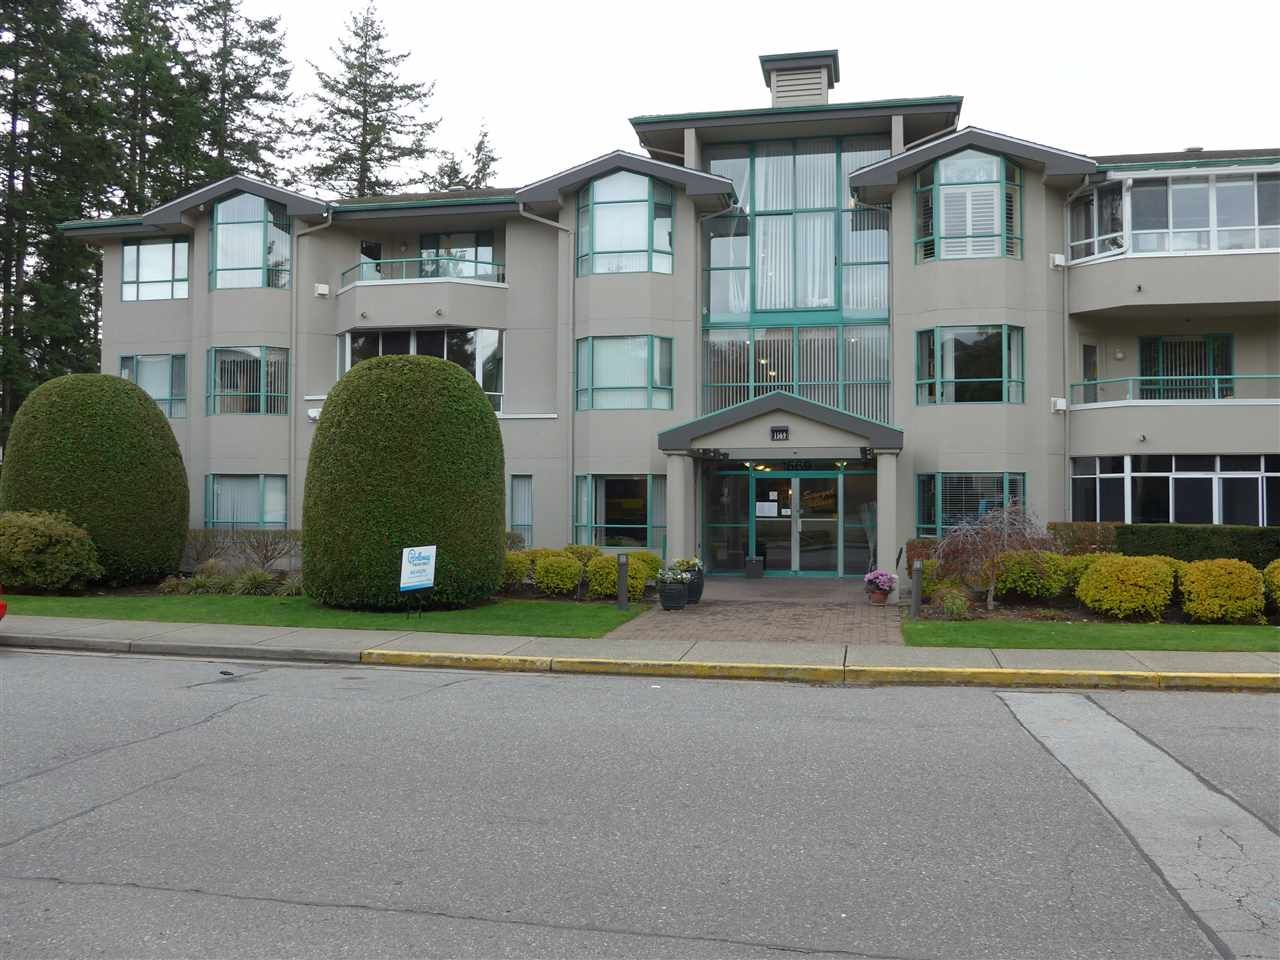 Main Photo: 304 1569 EVERALL STREET: White Rock Condo for sale (South Surrey White Rock)  : MLS®# R2222220